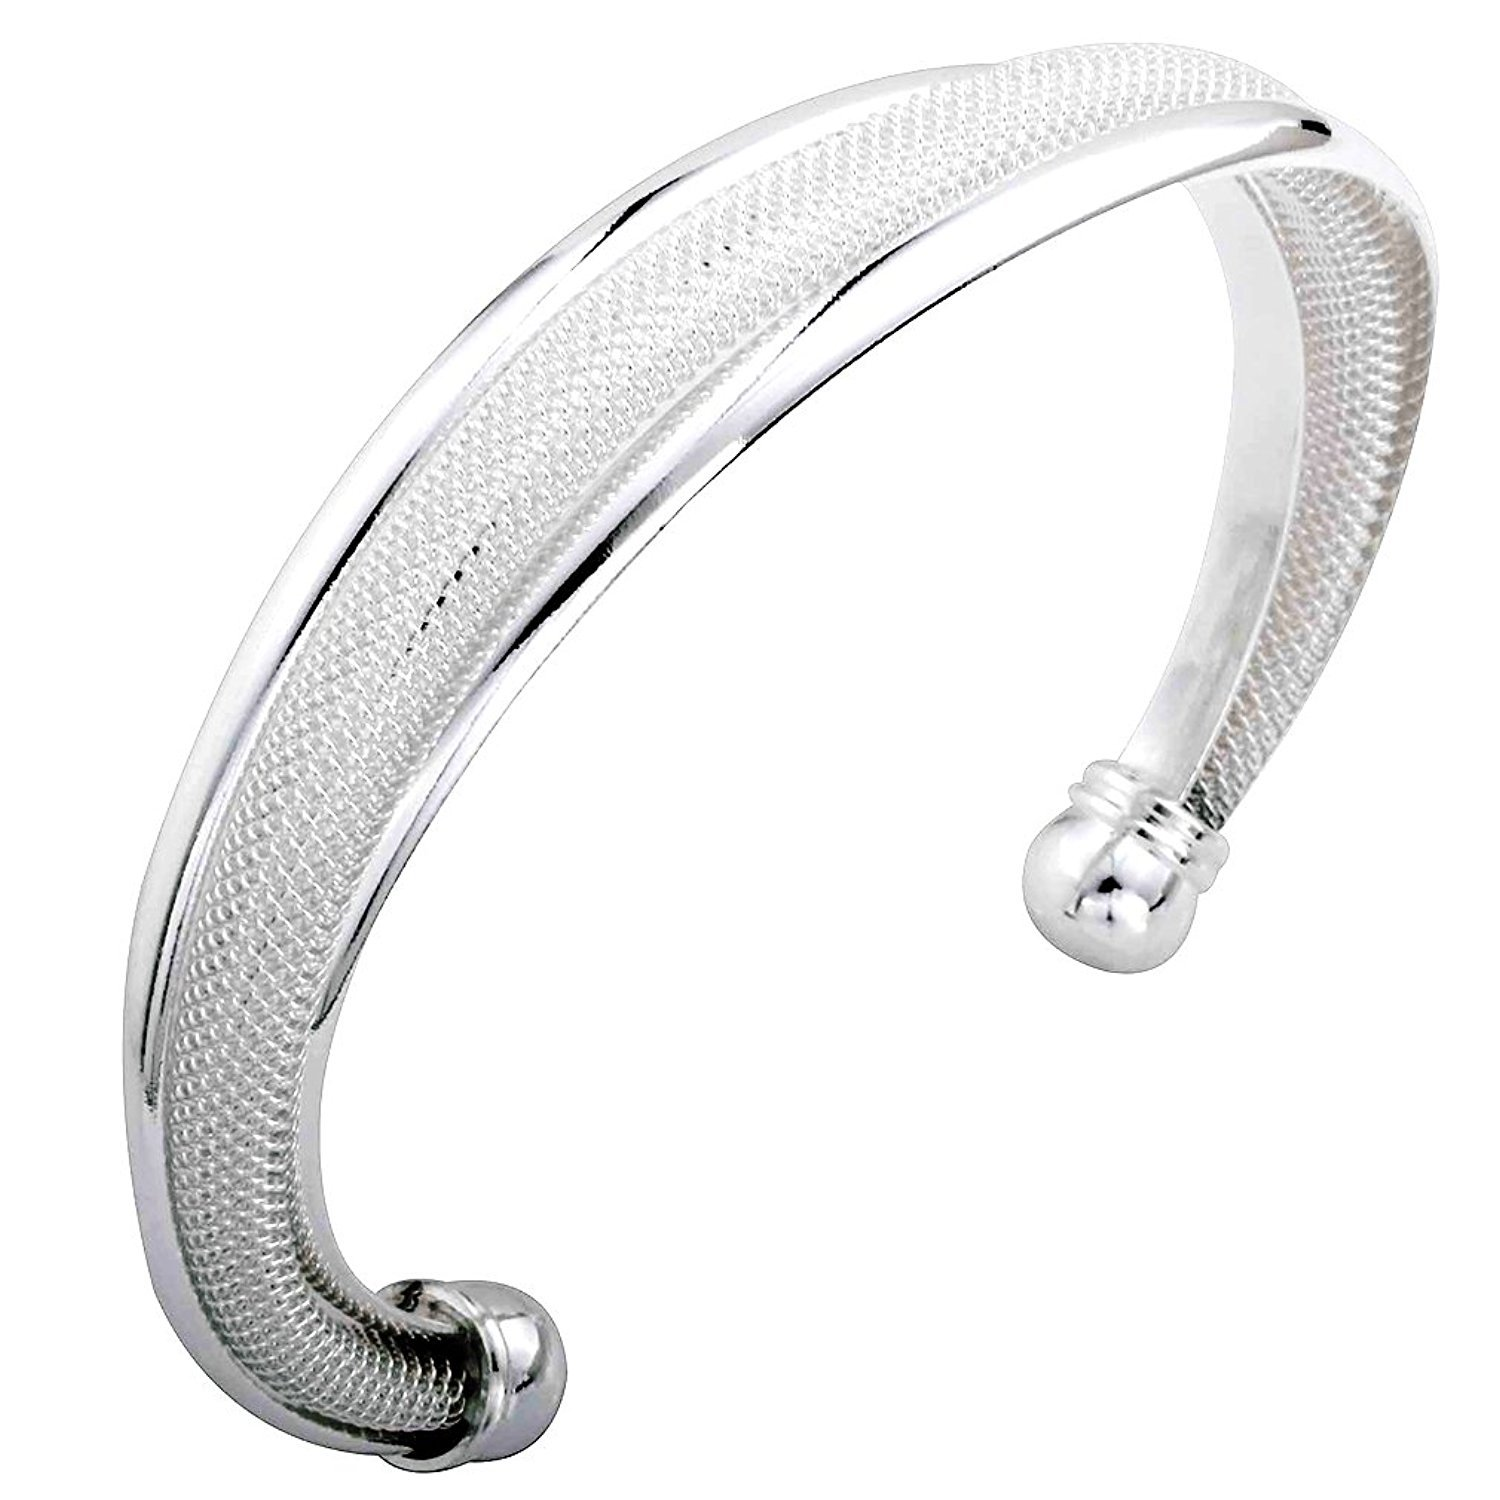 DVANIS Jewelry Noble Cuff Traditional Plated Silver Bangle Bracelet for Women Gift Idea